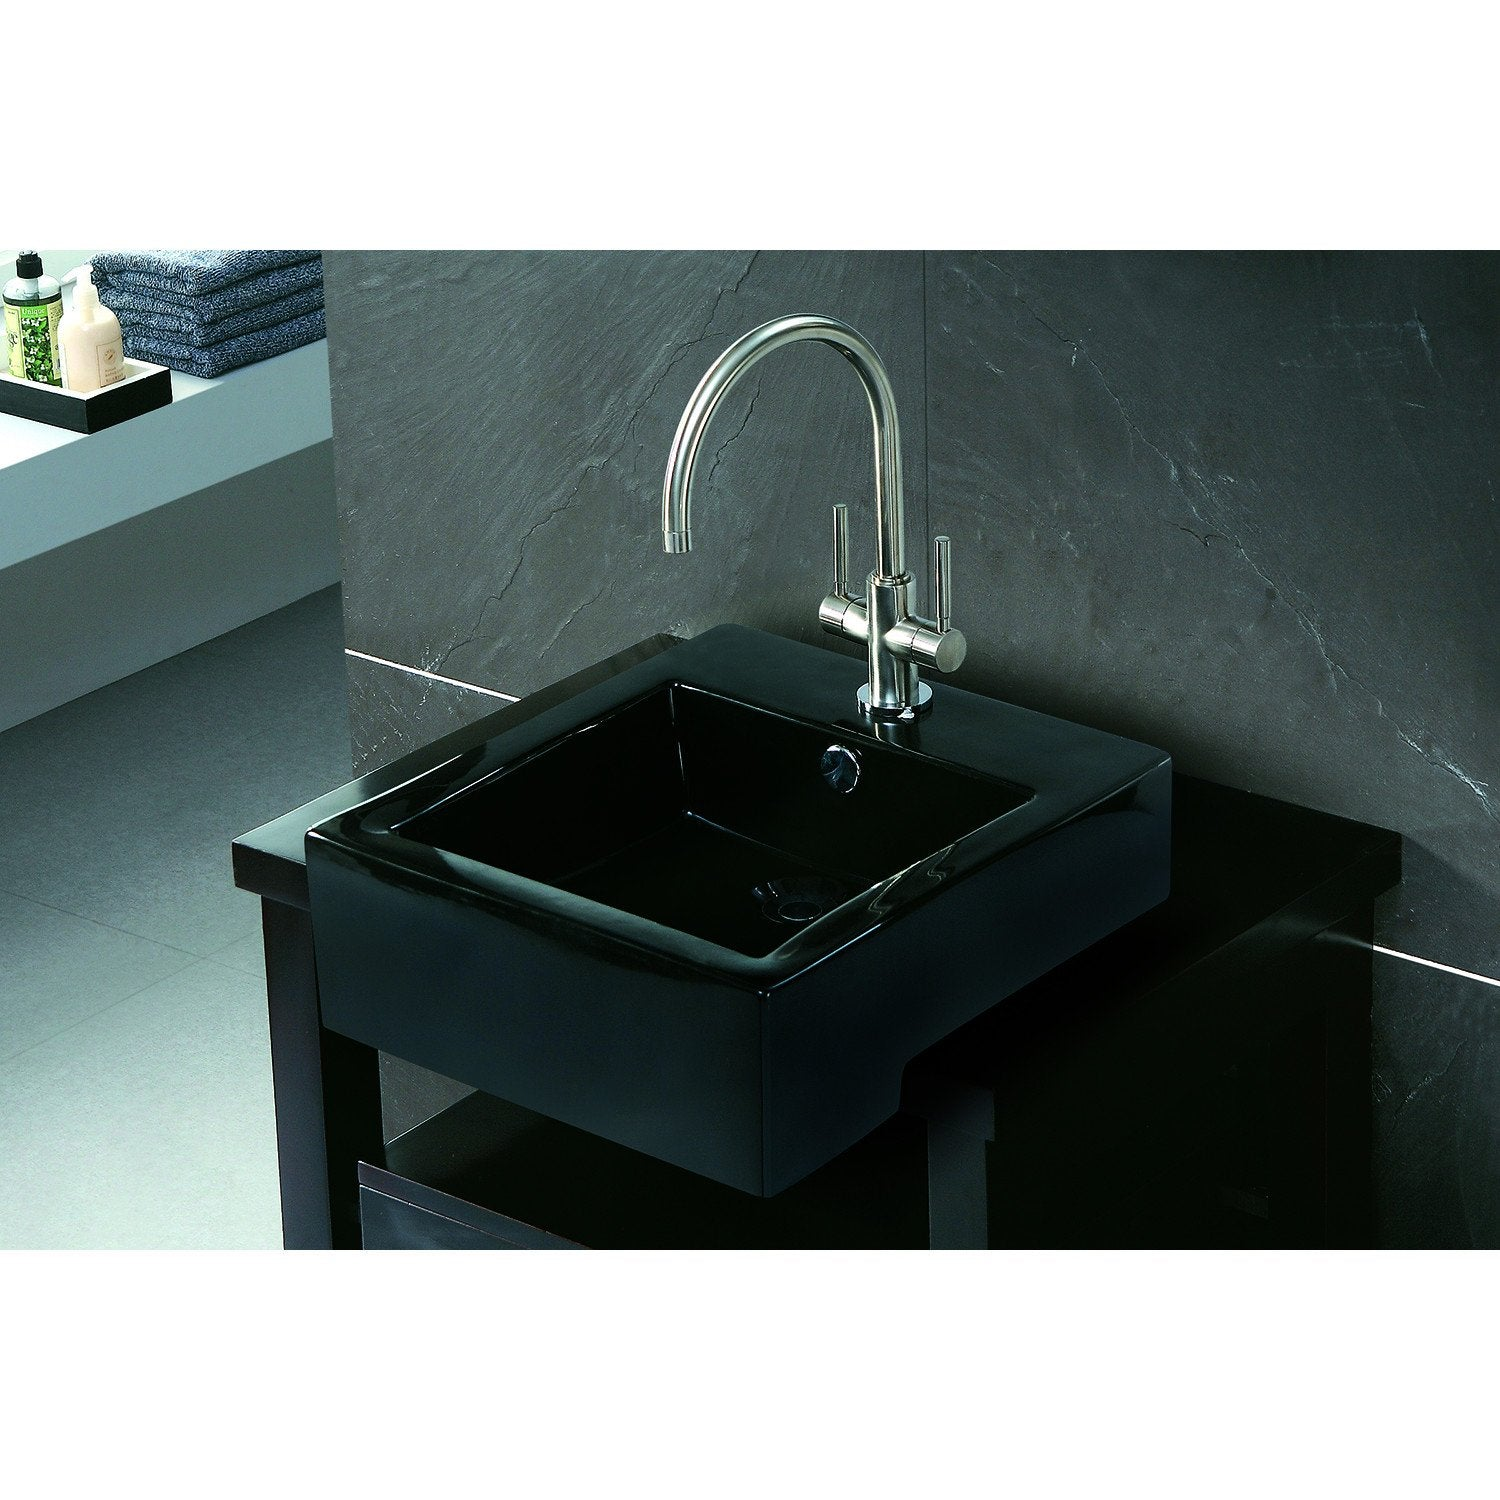 Black China Vessel Bathroom Sink With Overflow Hole